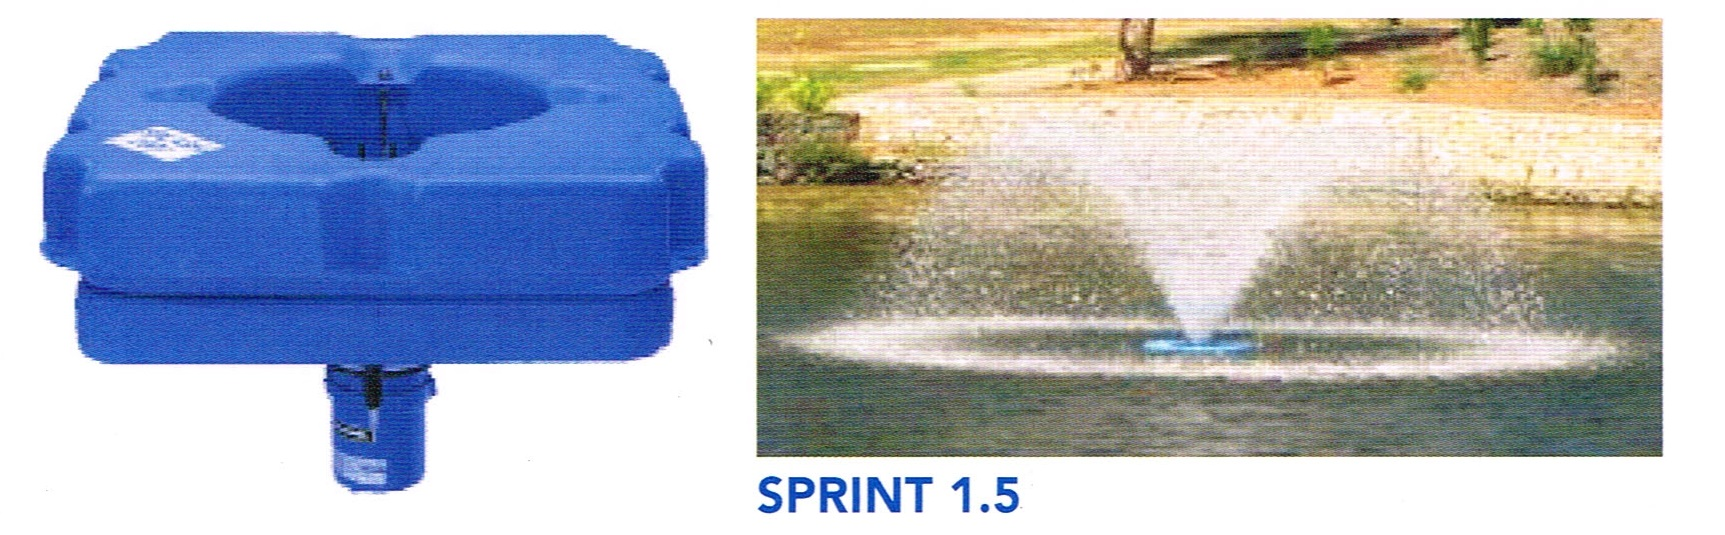 ACQUA & CO SPRINT 1.5 SINGLE PHASE POND AERATOR